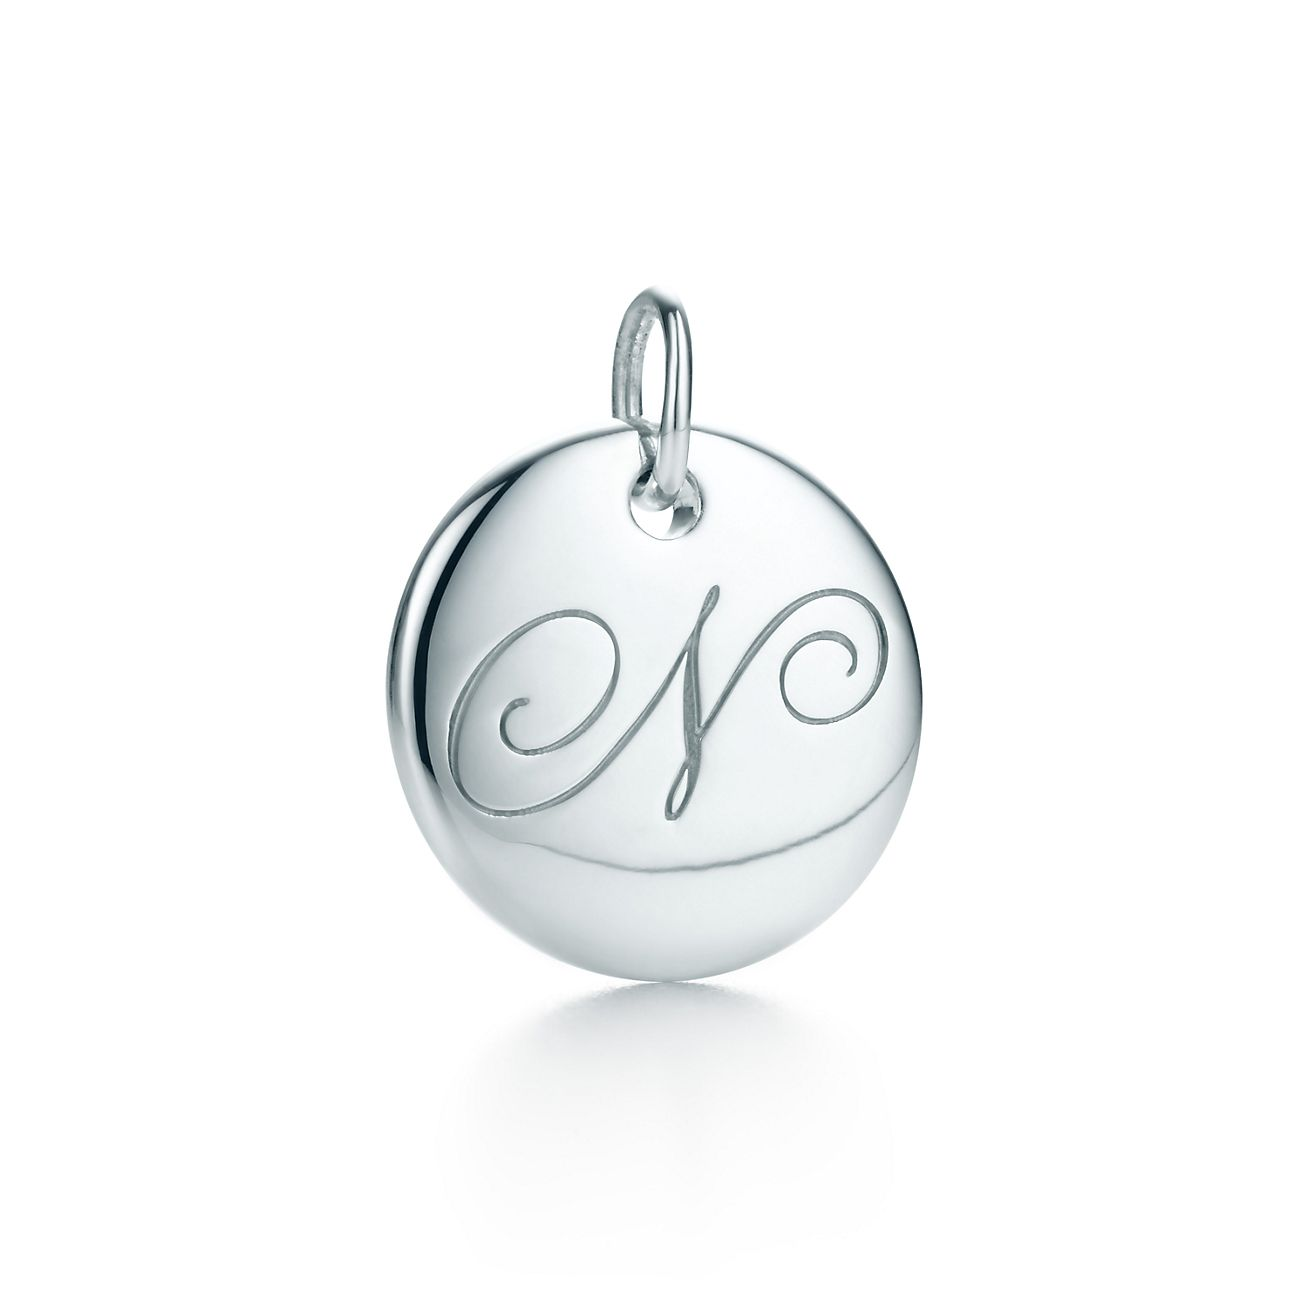 Tiffany Notes alphabet disc charm in silver, small Letters A-Z available - Size O Tiffany & Co.